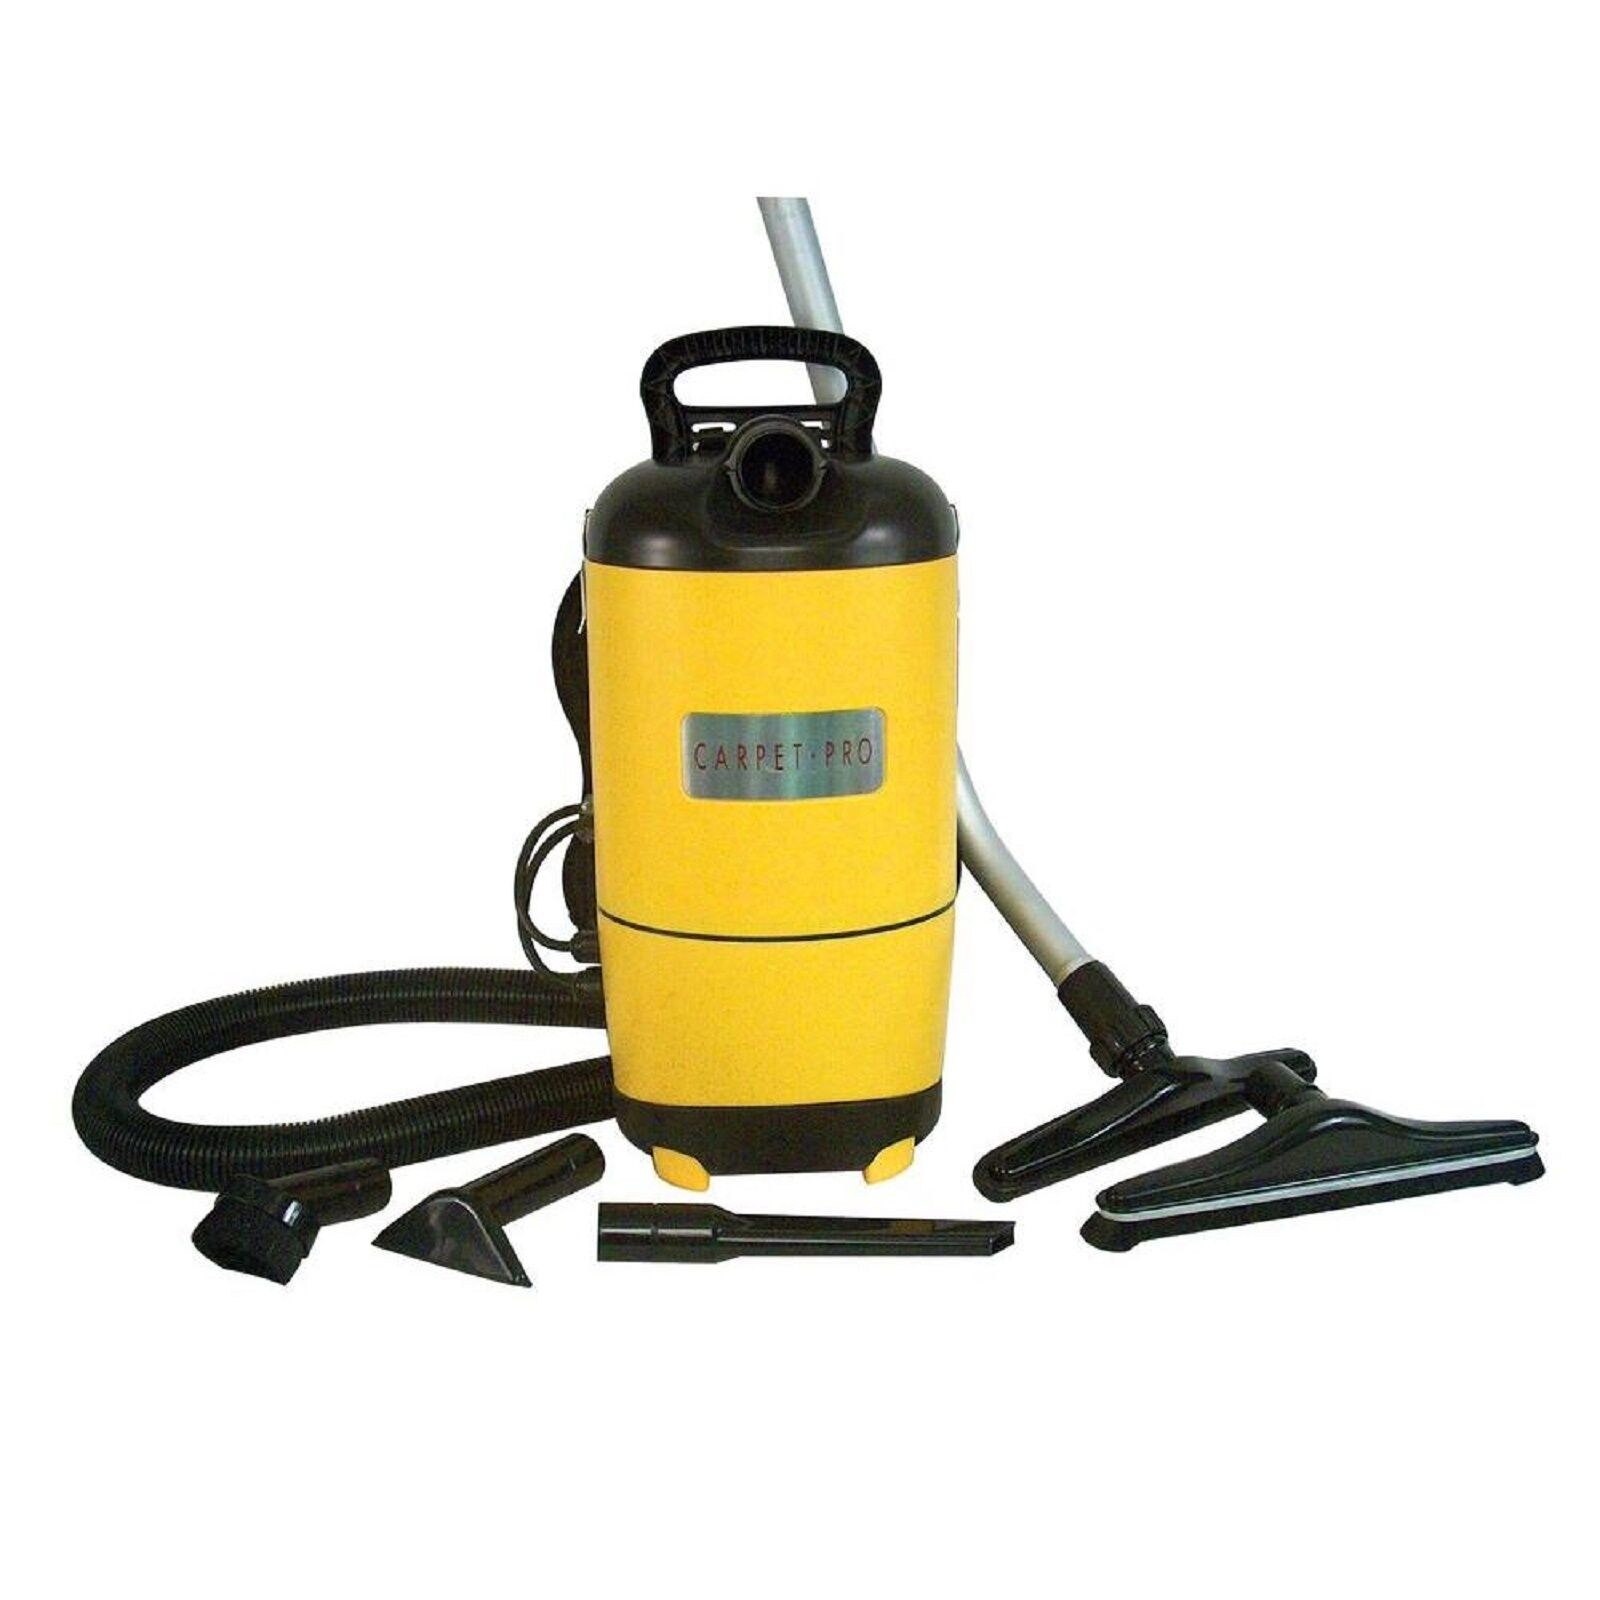 Carpet Pro SCBP1 Backpack Commercial Yellow Vacuum Cleaner